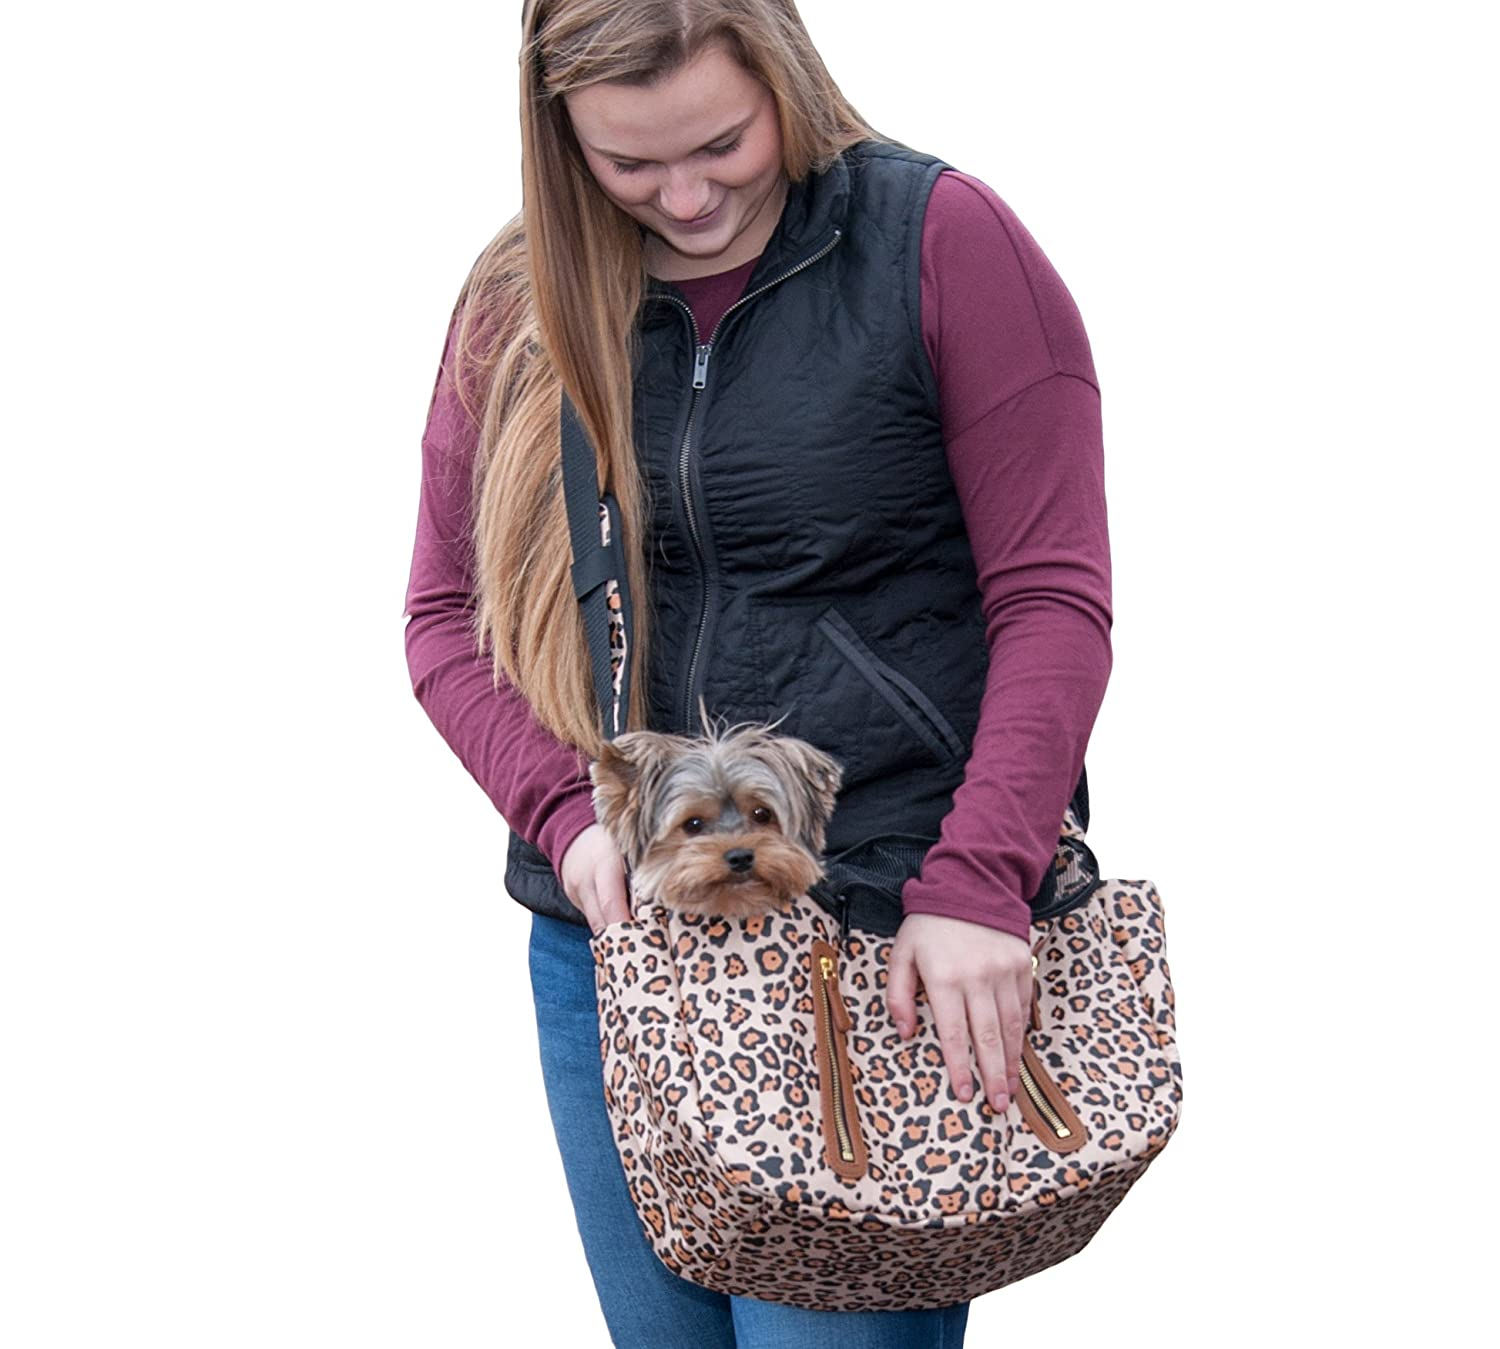 Jaguar Pet Gear R&R Sling Carrier for Cats Dogs, Storage Pockets, Removable Washable Liner, Zippered Top with Mesh Window